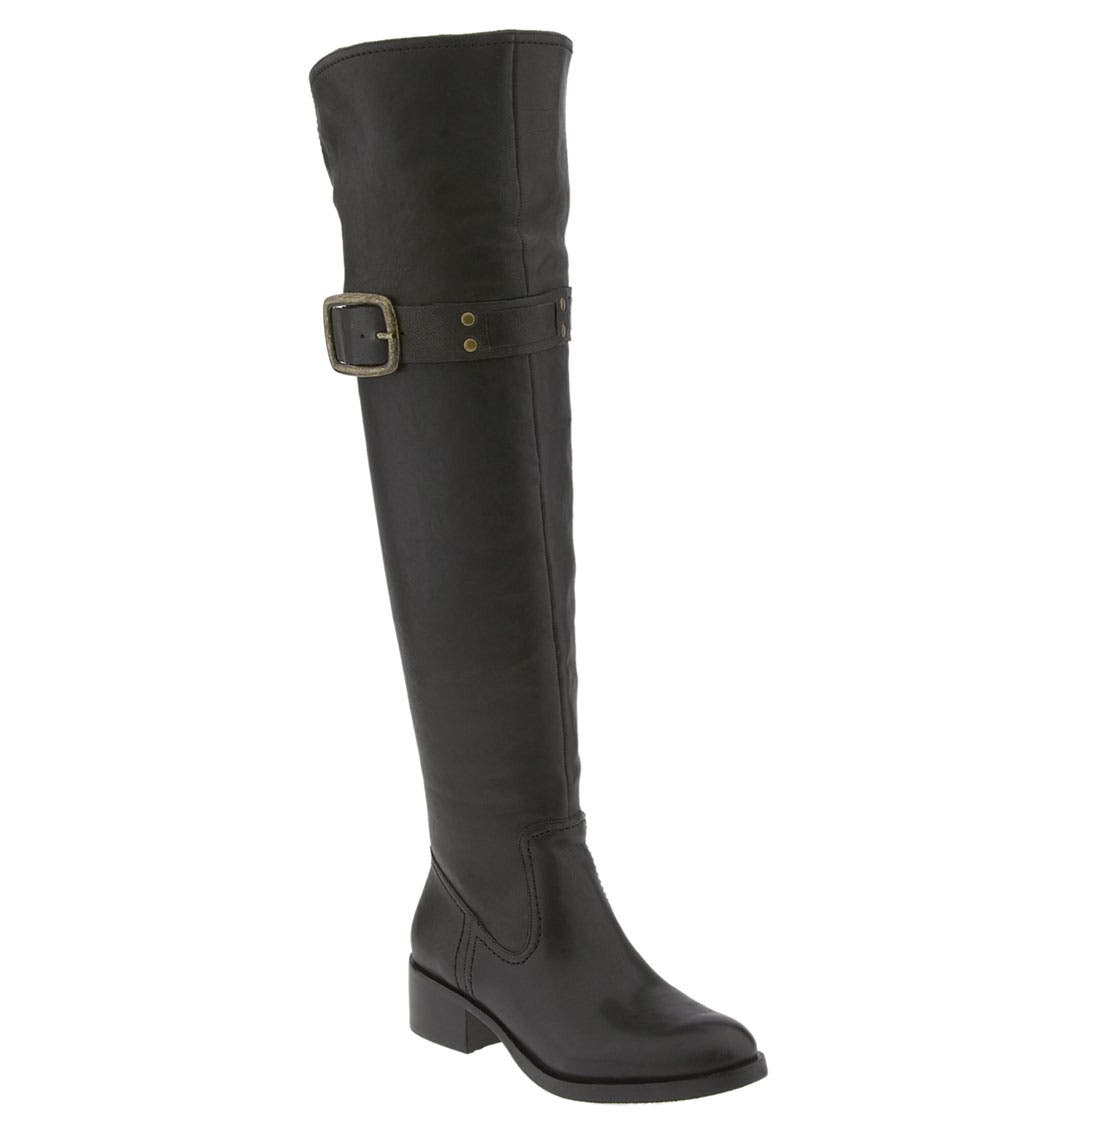 JESSICA SIMPSON 'Clancey' Over the Knee Boot, Main, color, 001